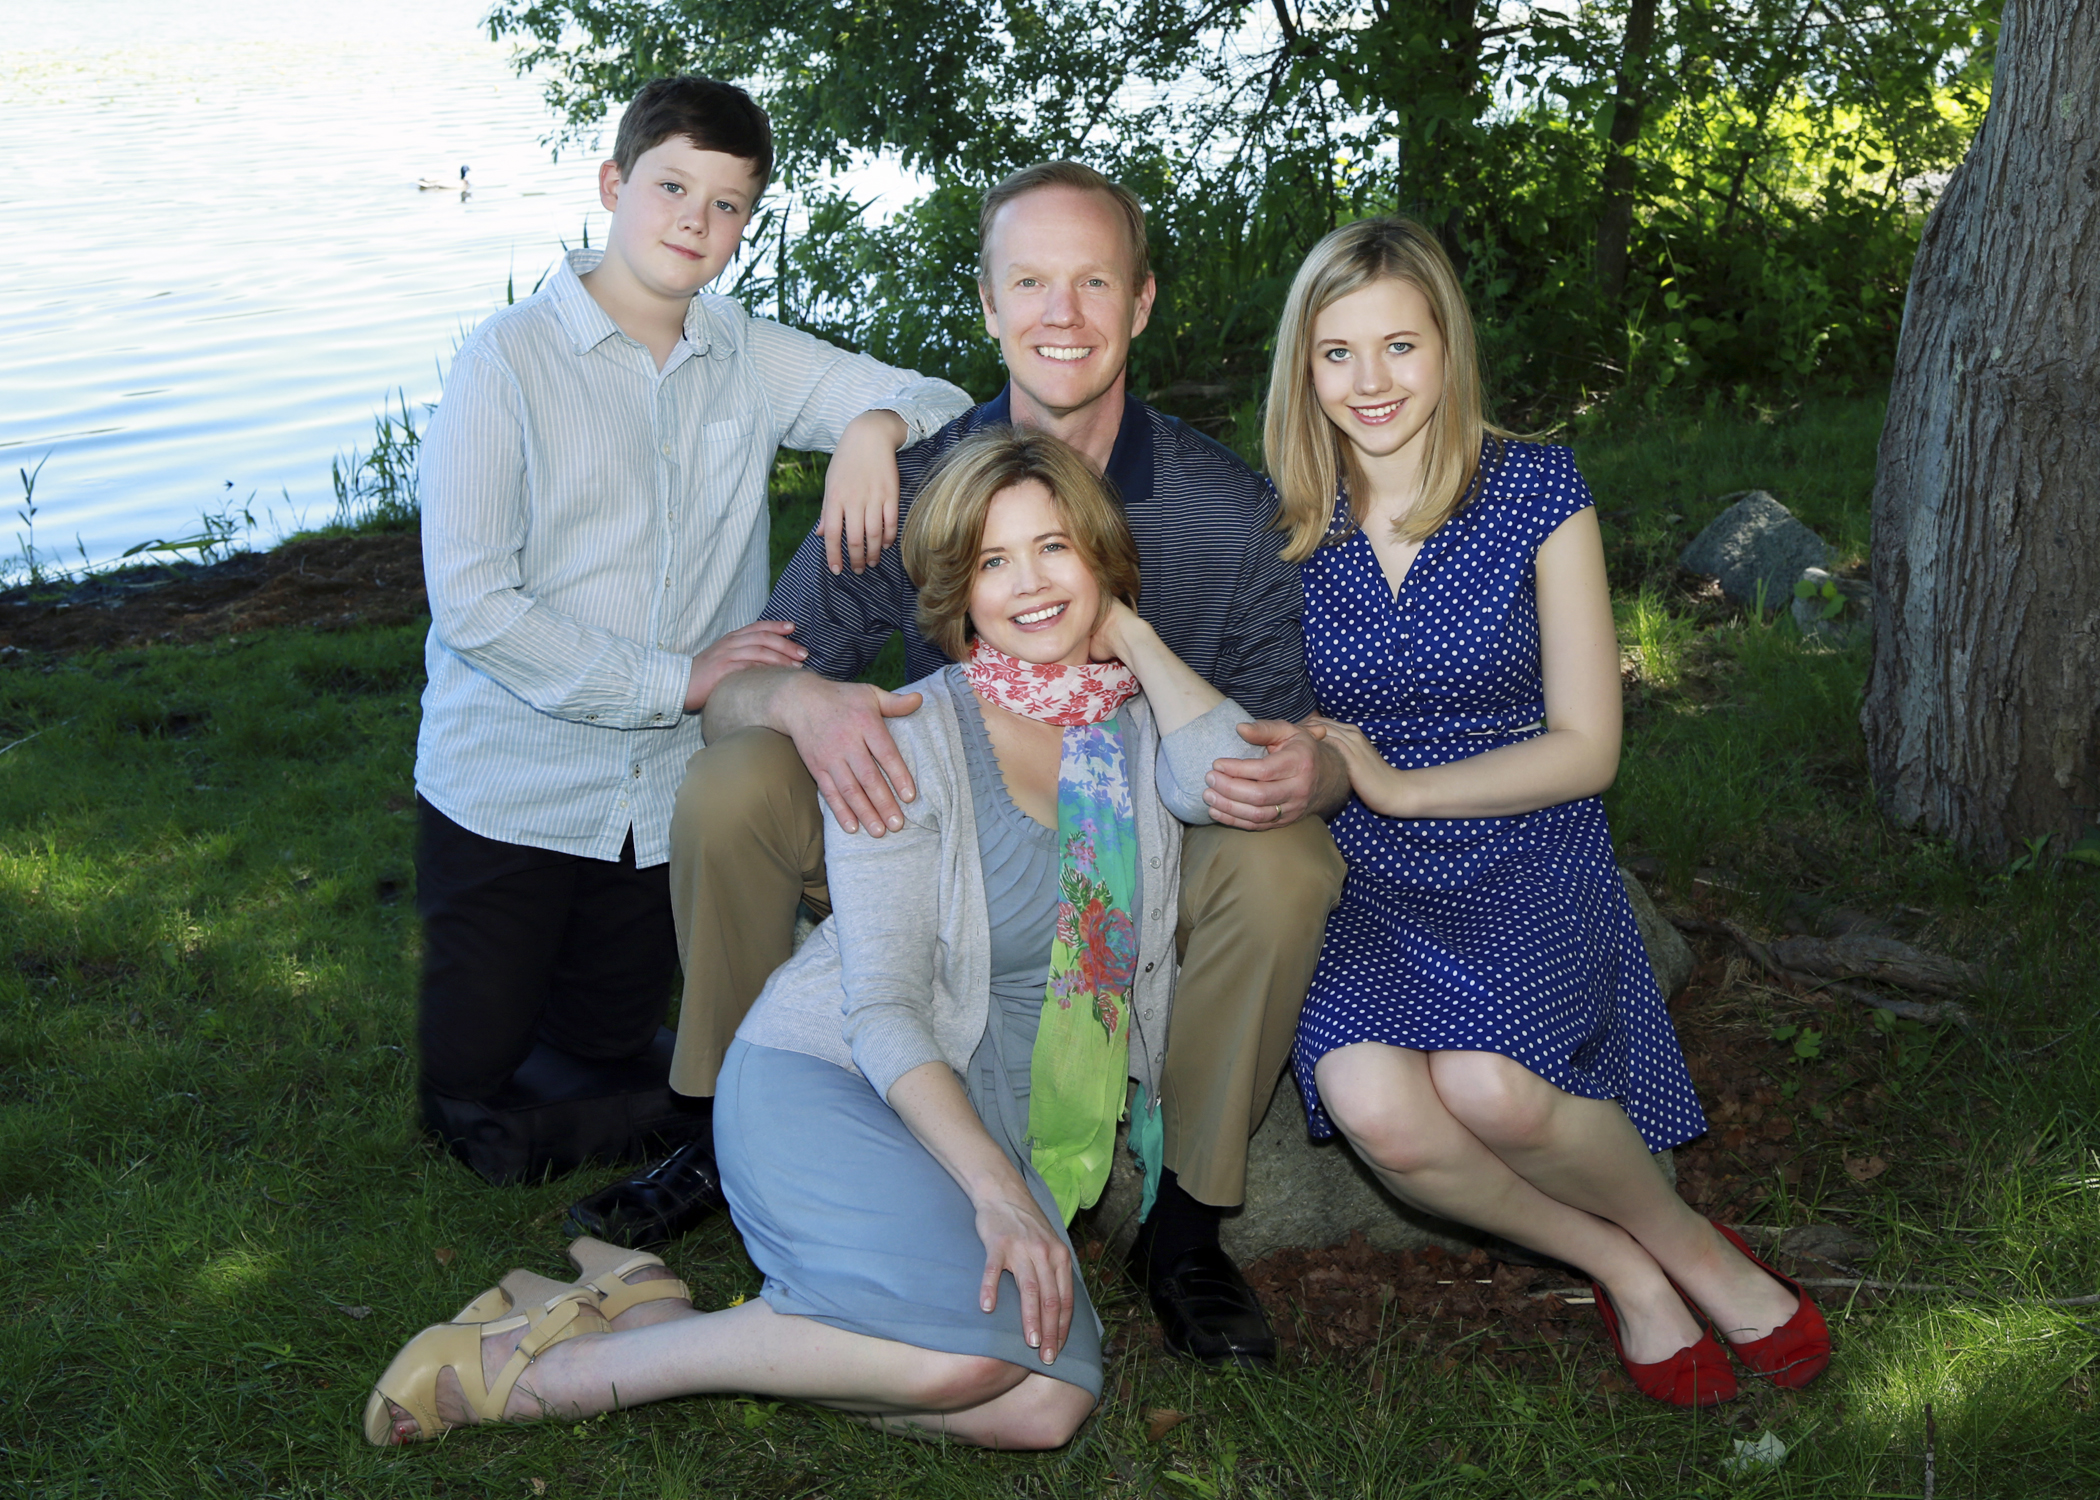 Family Photography | Lynnfield, MA